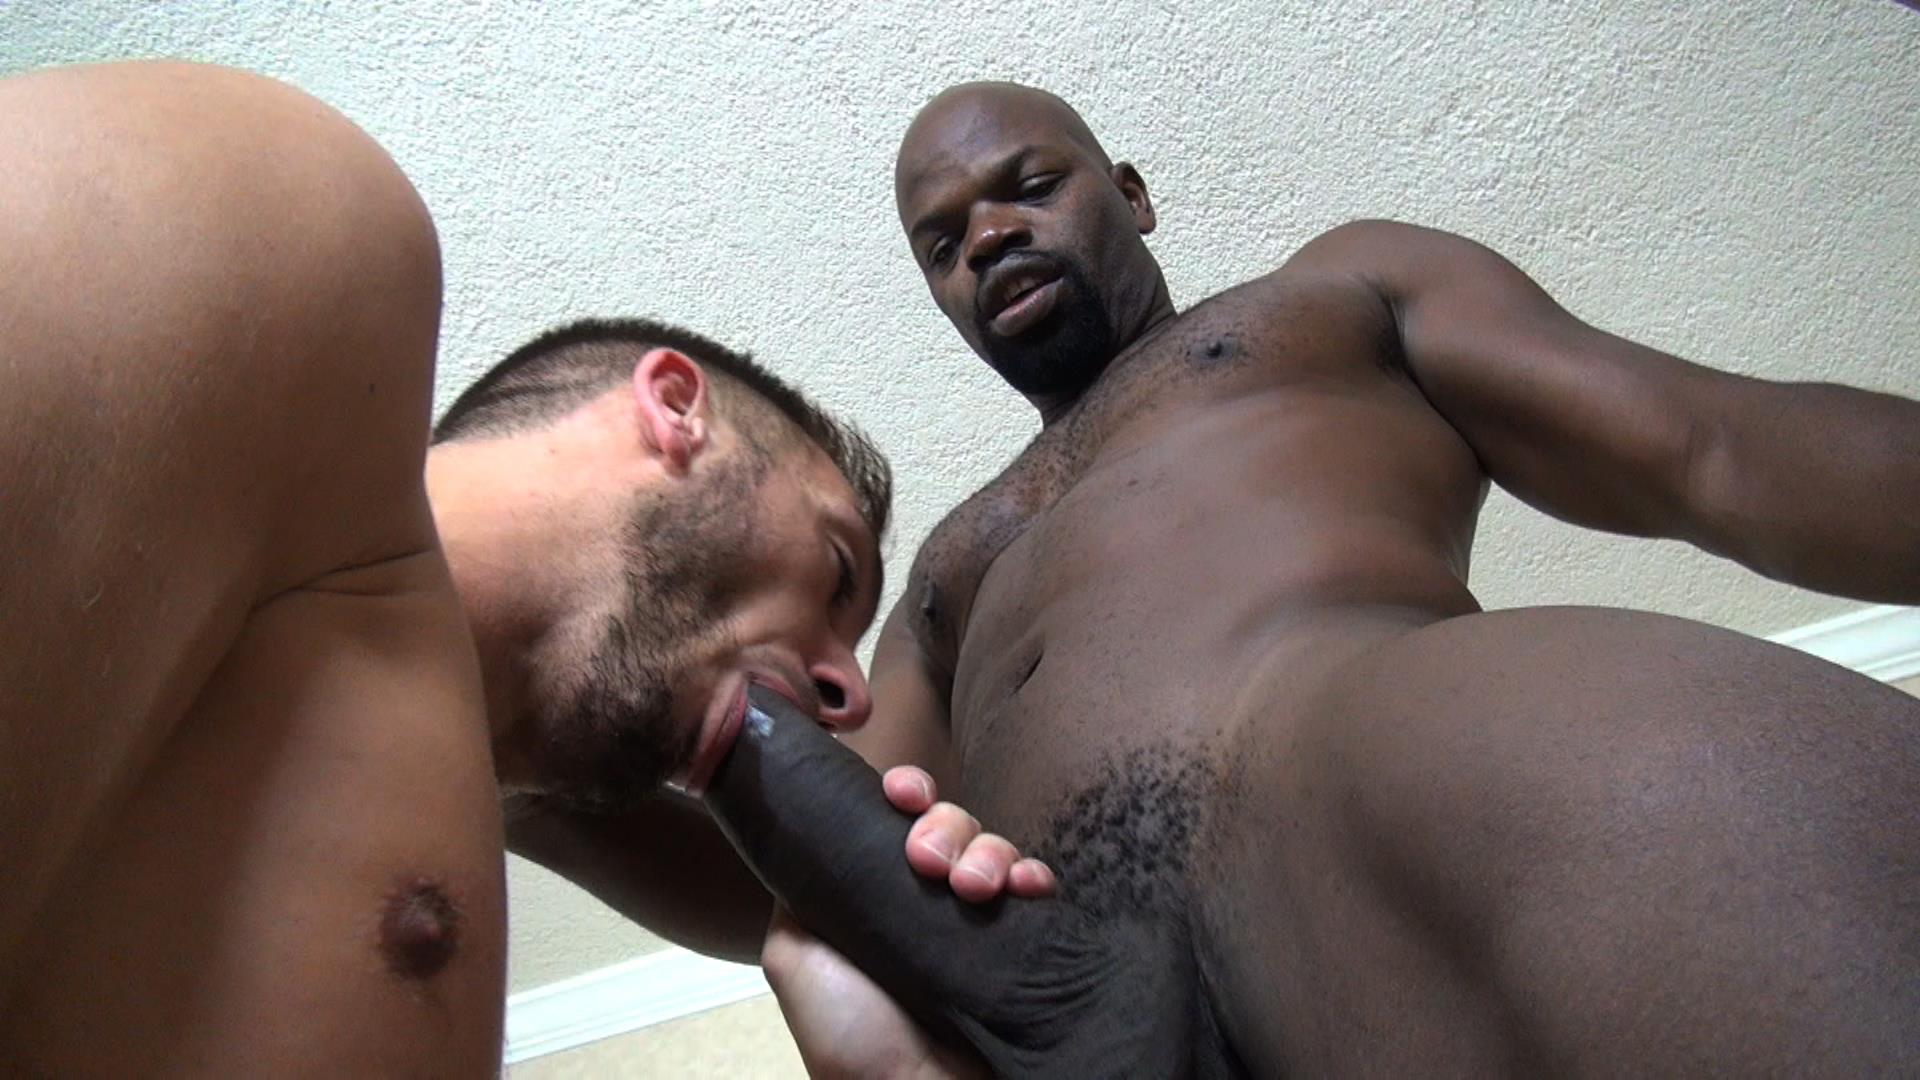 Gay Big Black Cock Interracial Ass Fuck And Cumshot